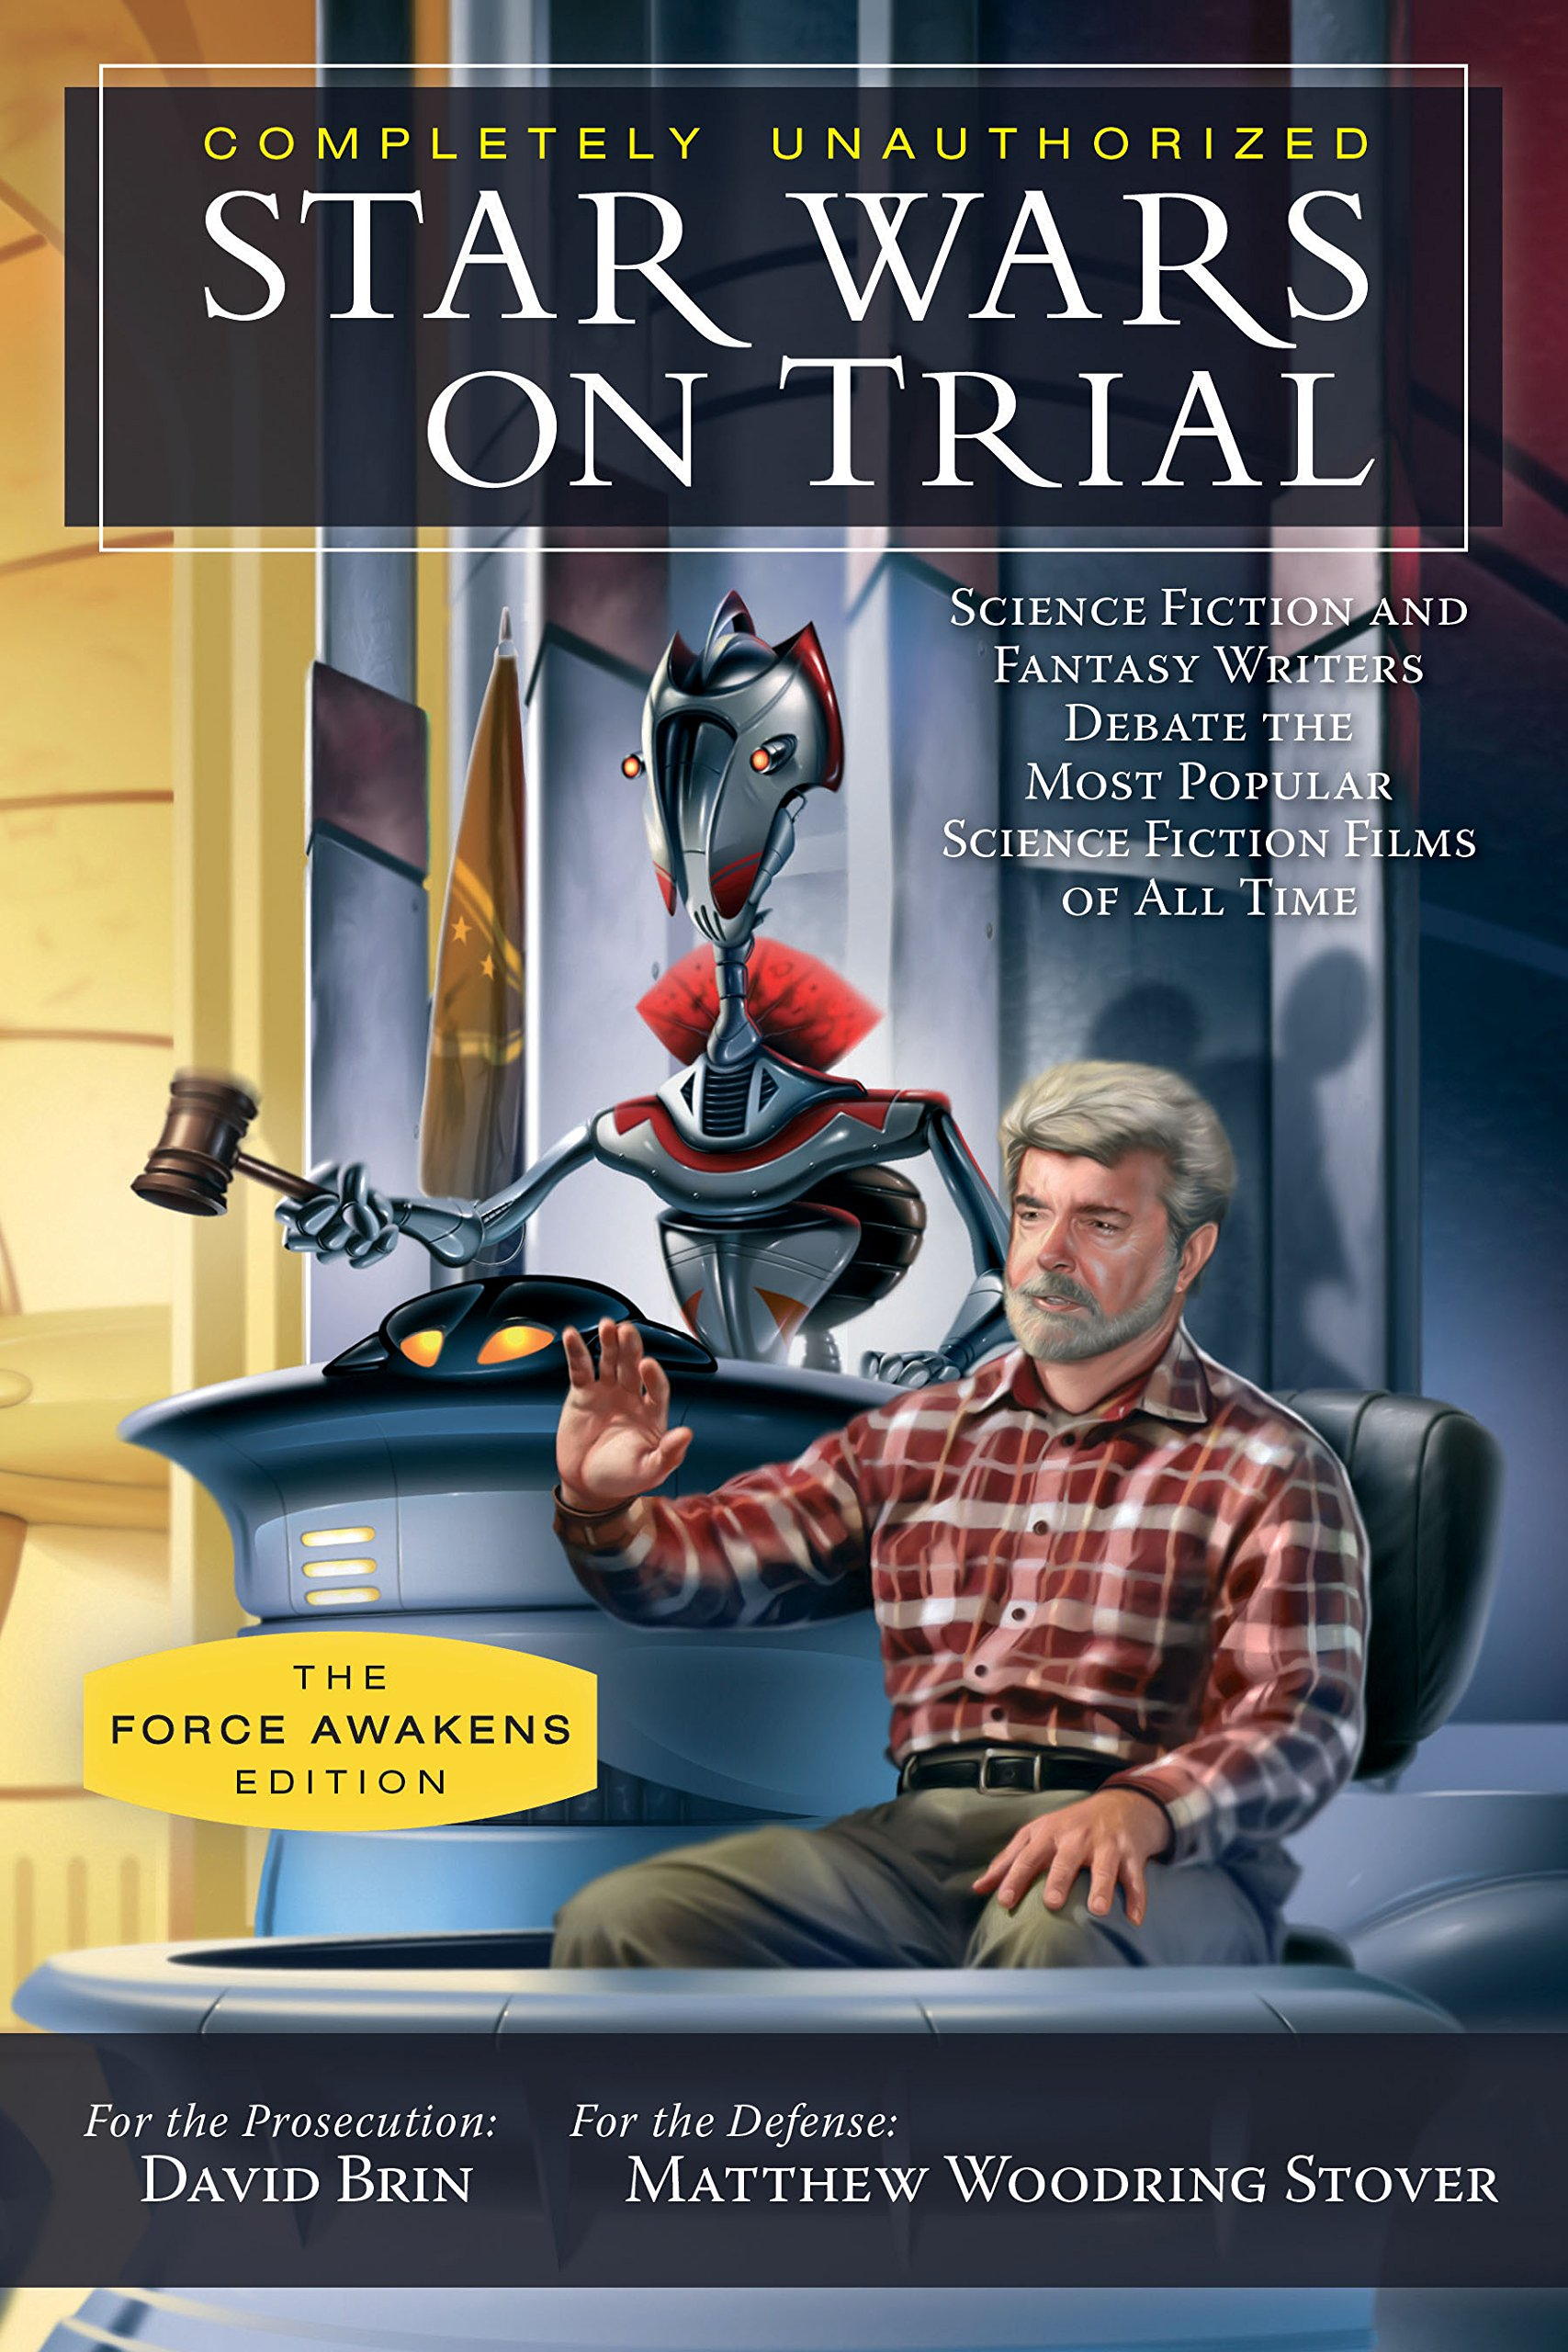 Star Wars on Trial (reprint)